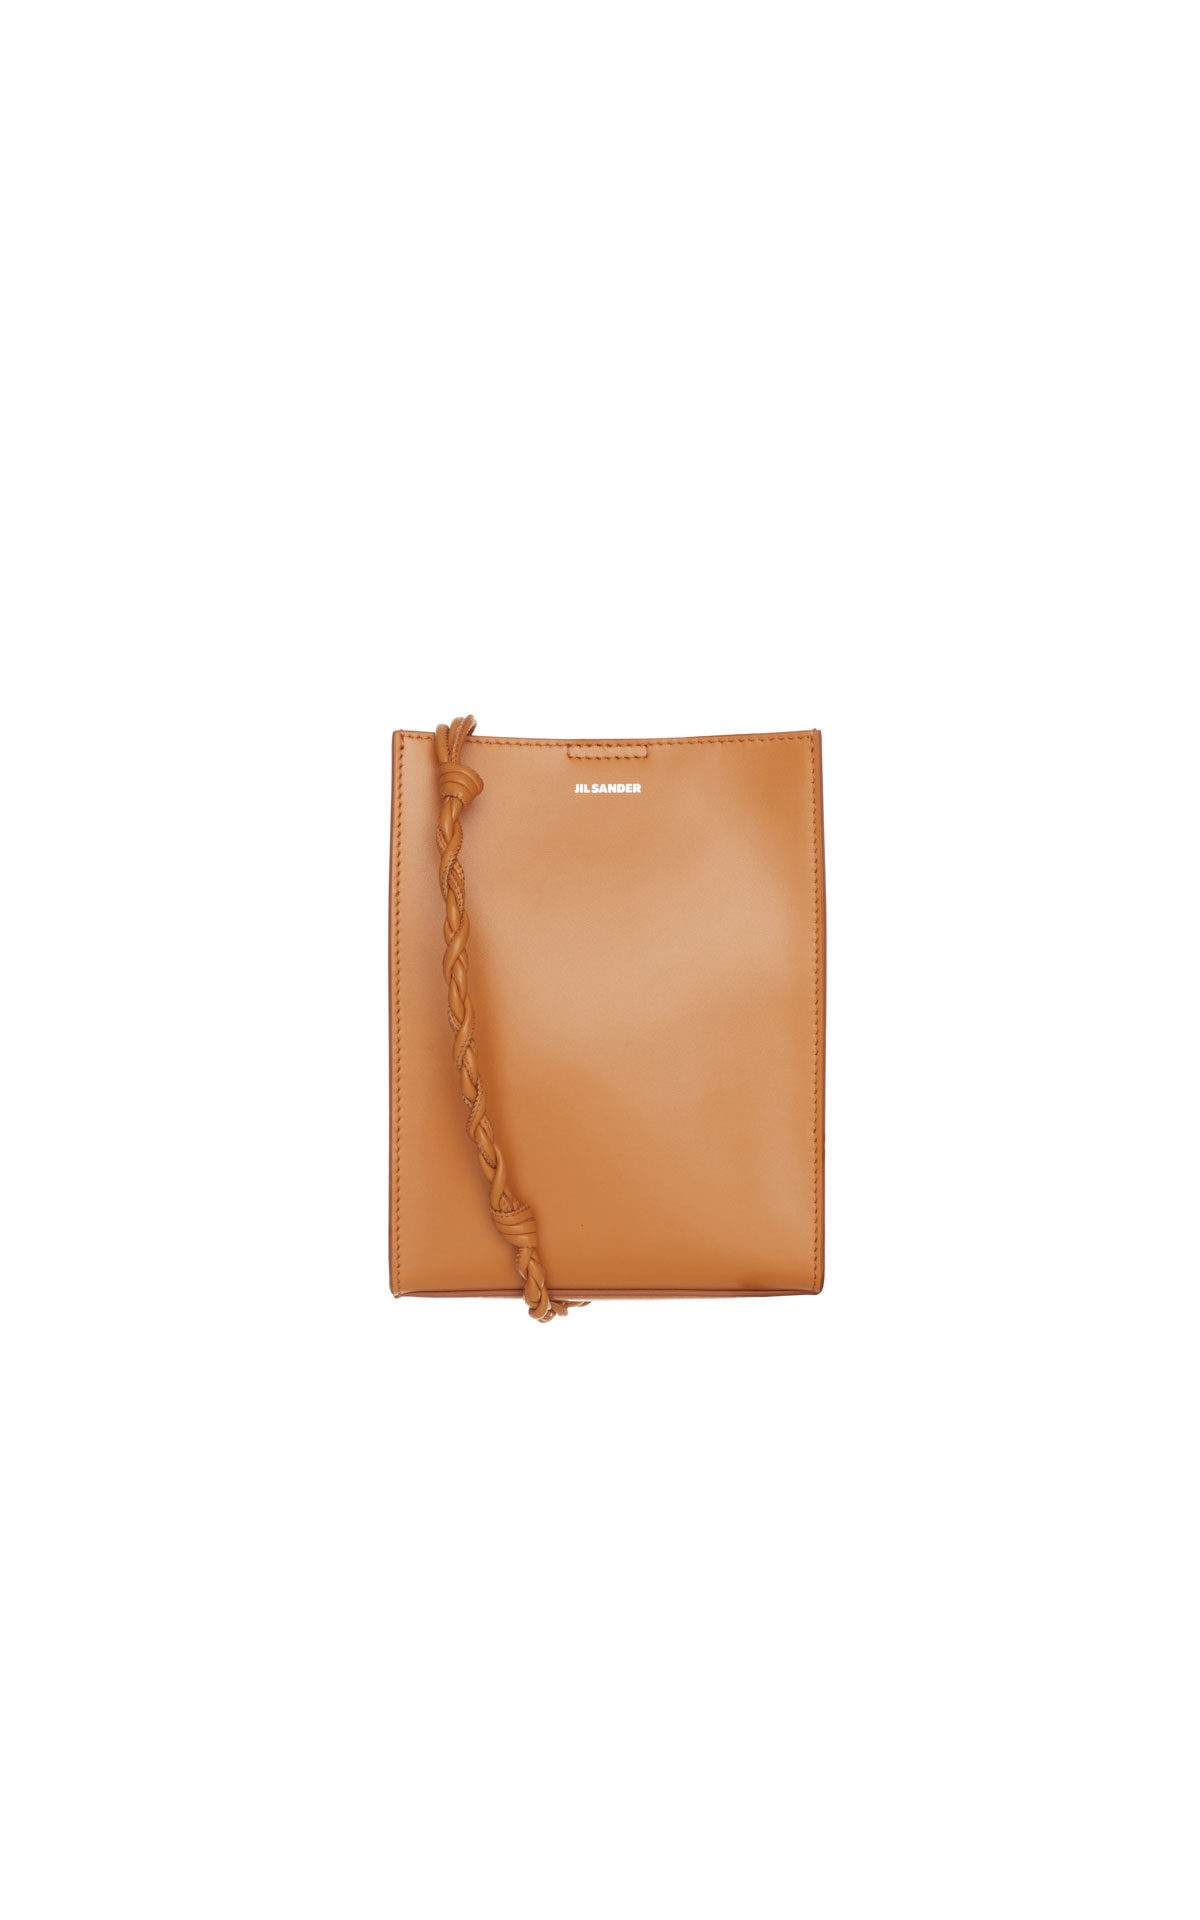 Jil Sander Small Tangle bag in ocre from Bicester Village